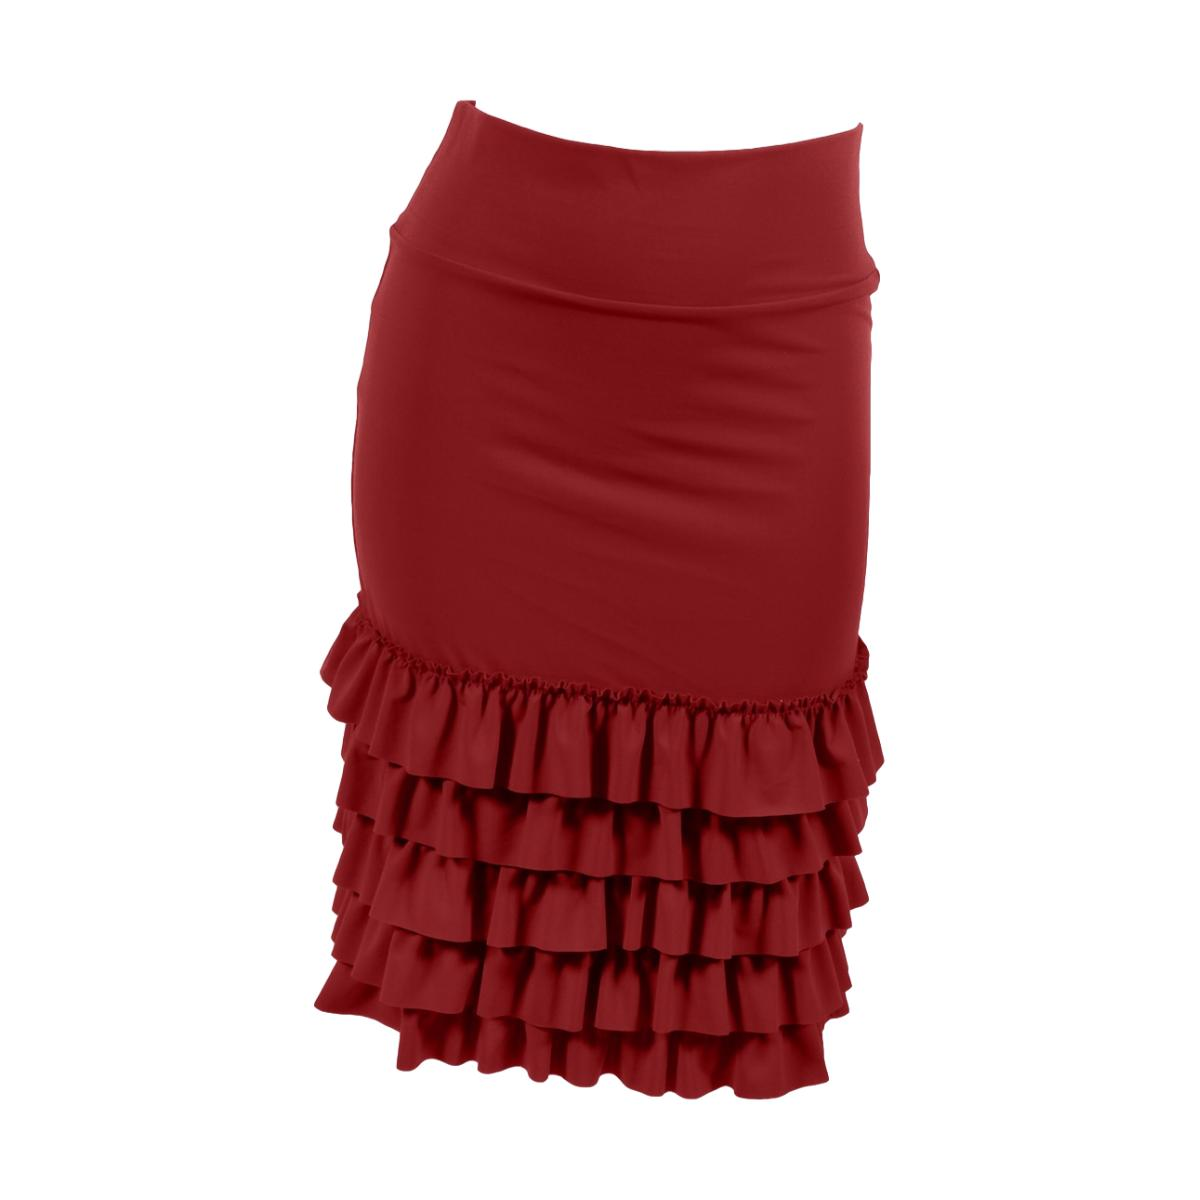 Bring on the Frill Layering Skirt | burgundy, skirt extenders, Peekaboo Chic | Modest Layering Apparel for women